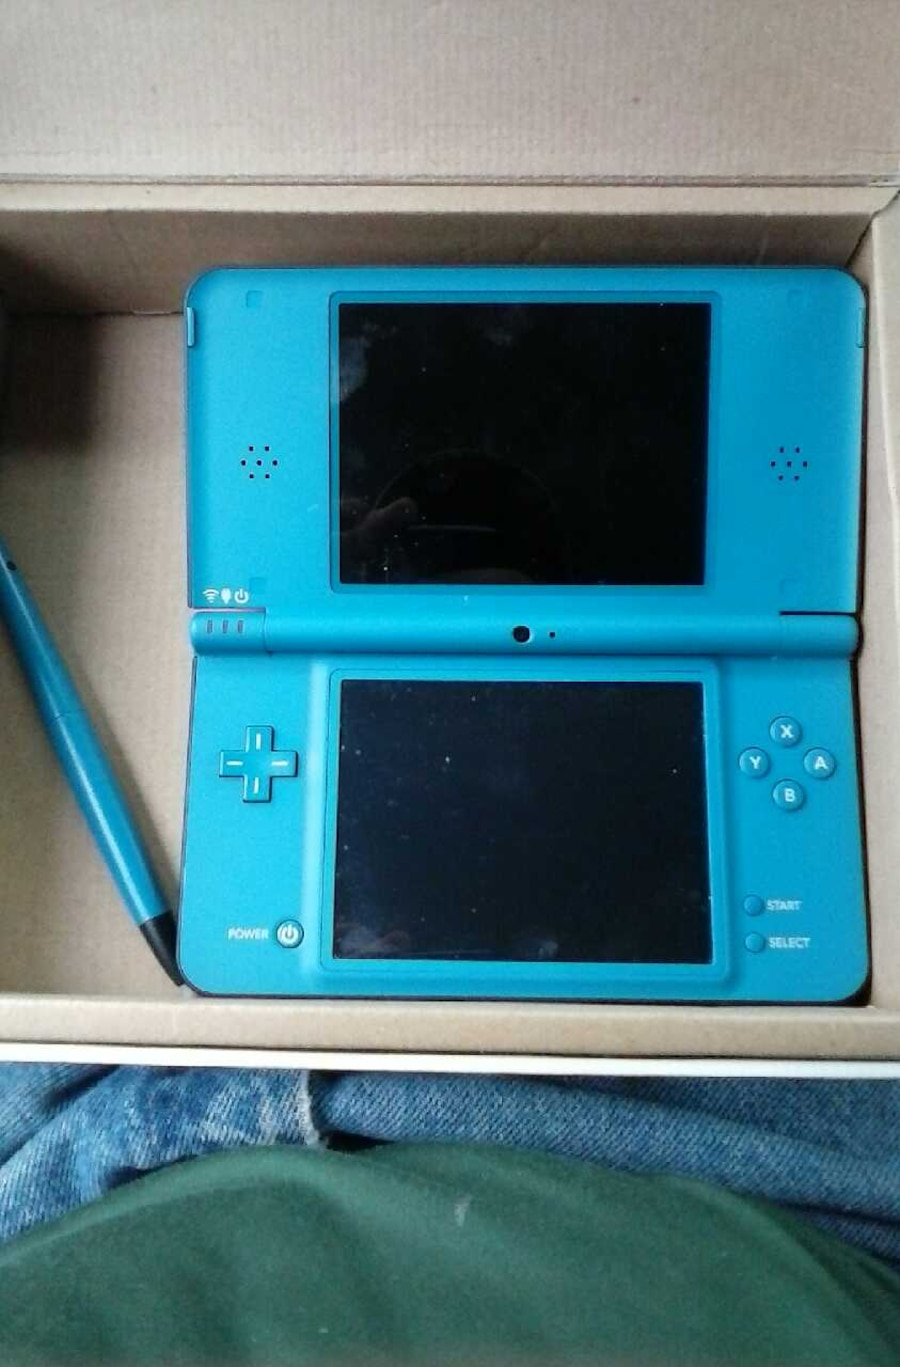 Remarkable, rather nintendo ds with webcam